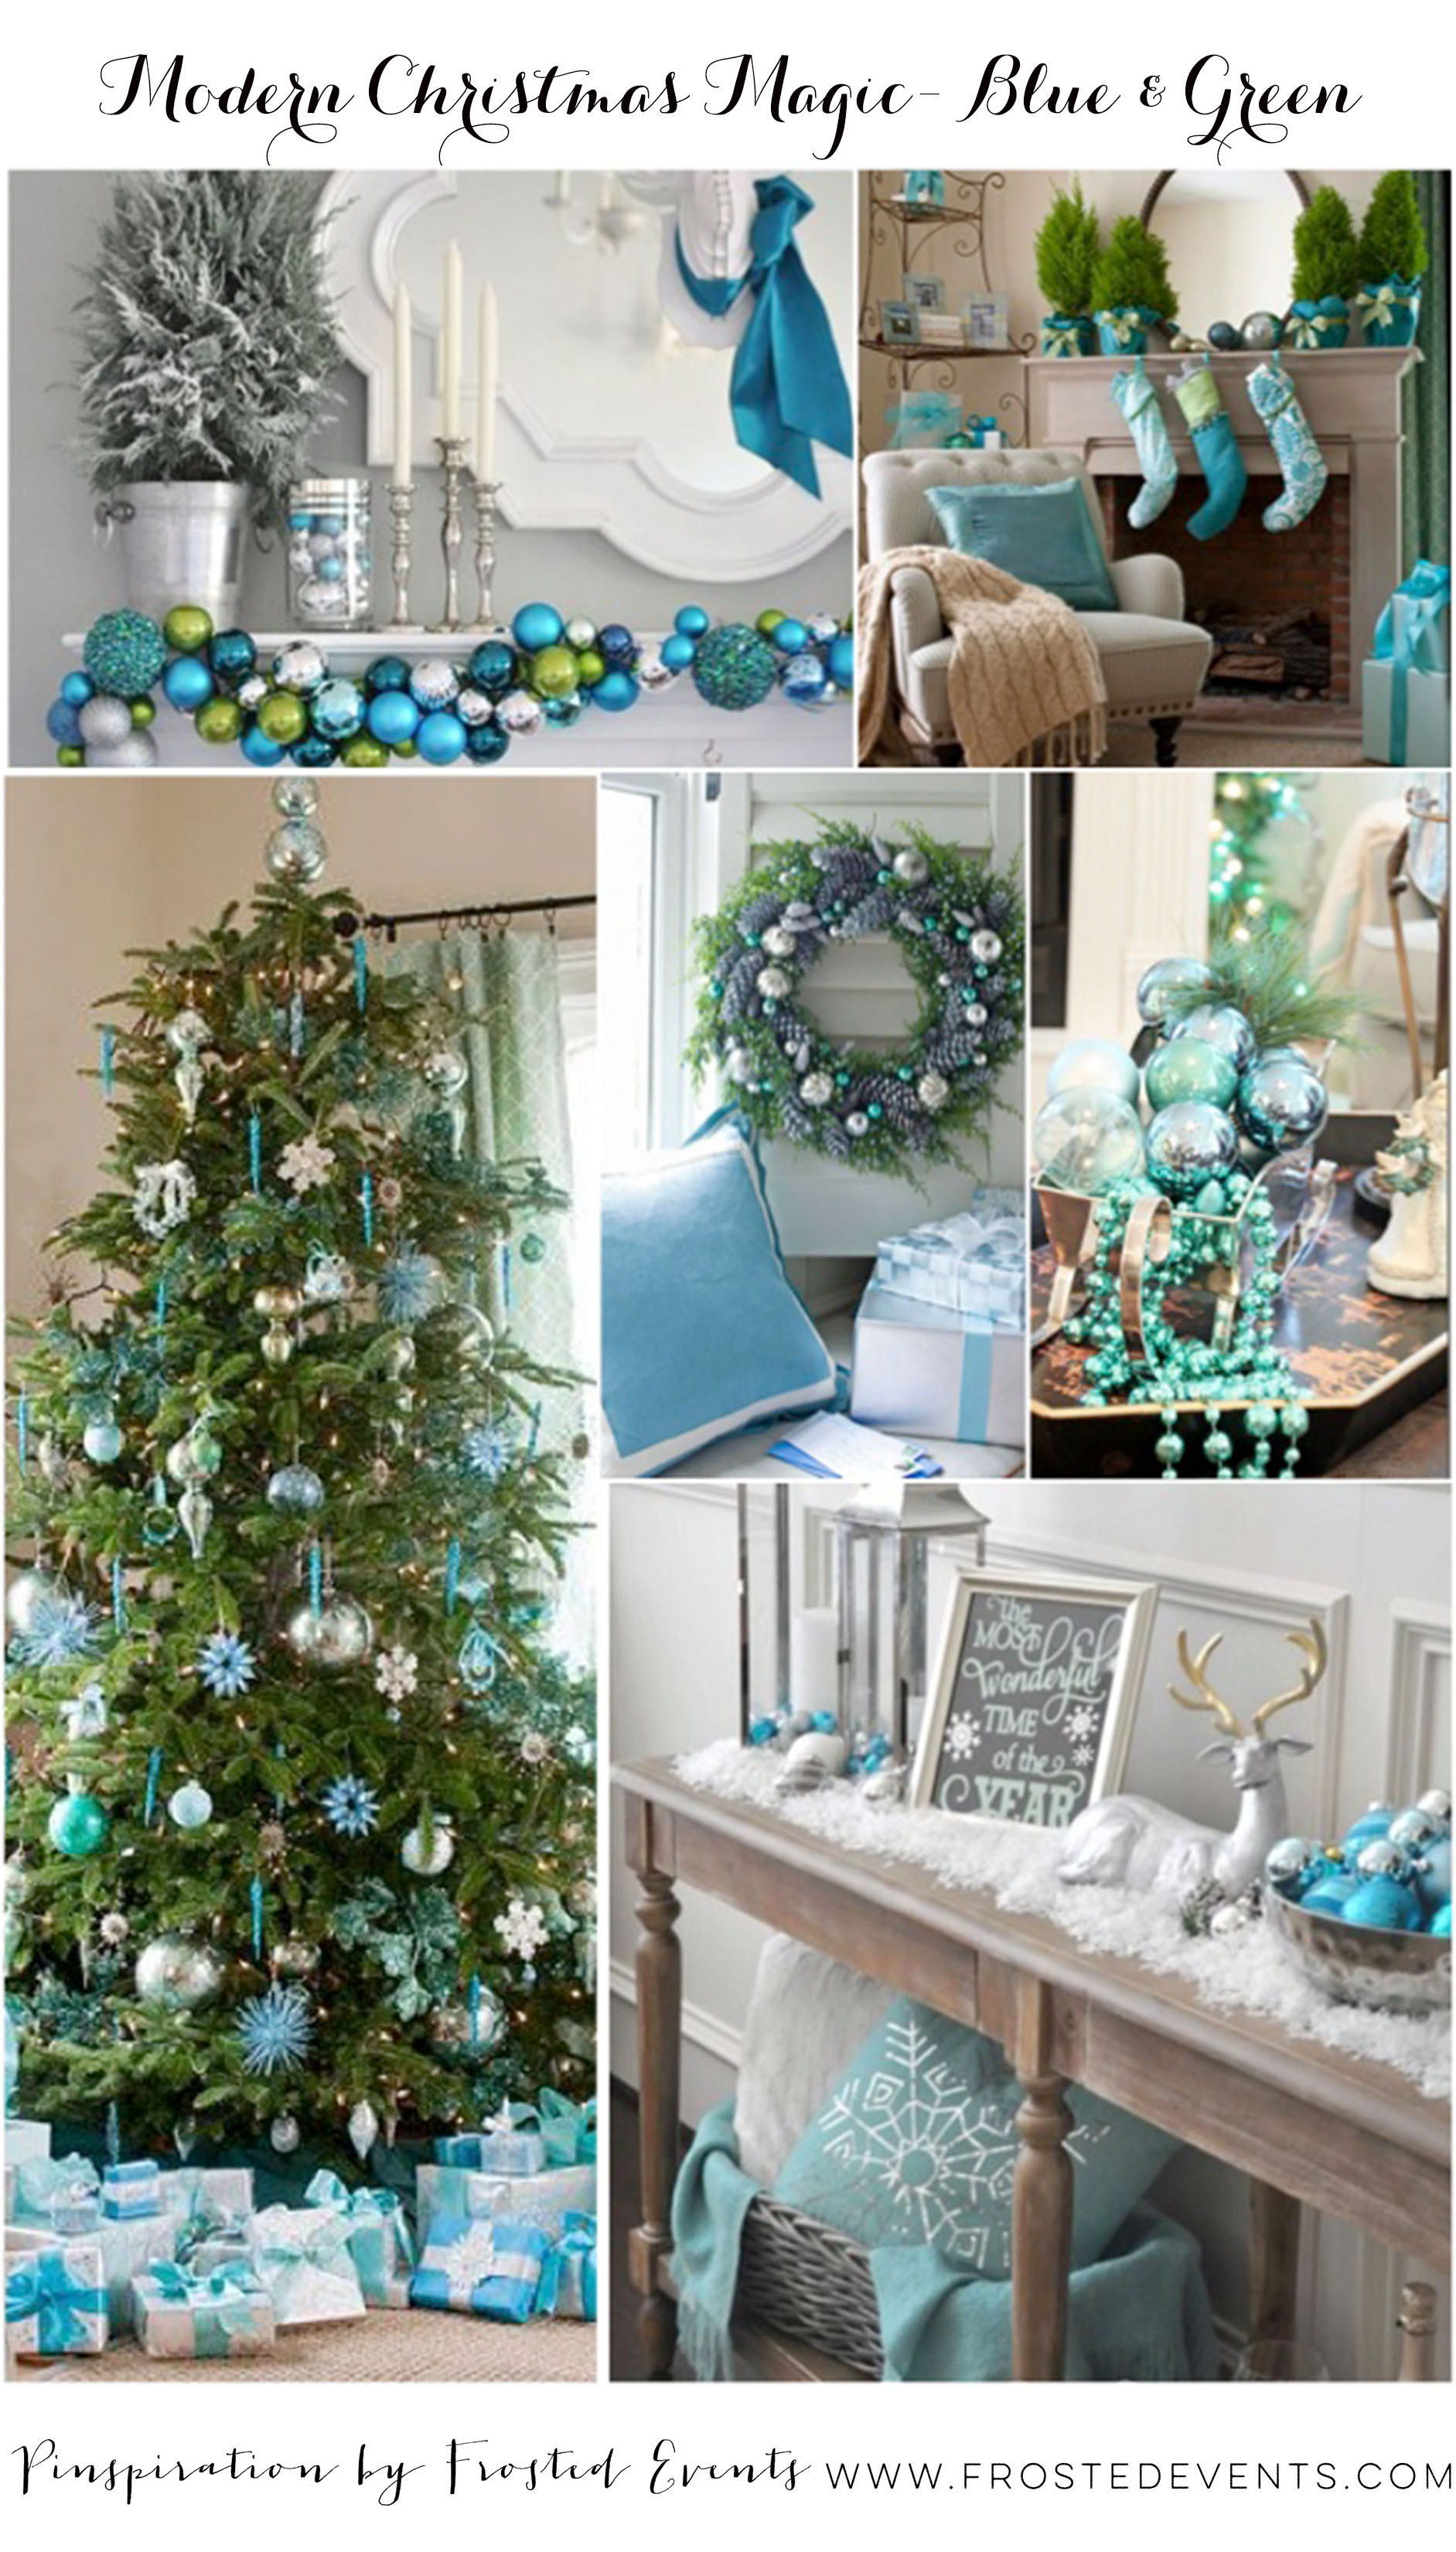 Modern Christmas in Blue Green www.frostedevents.com